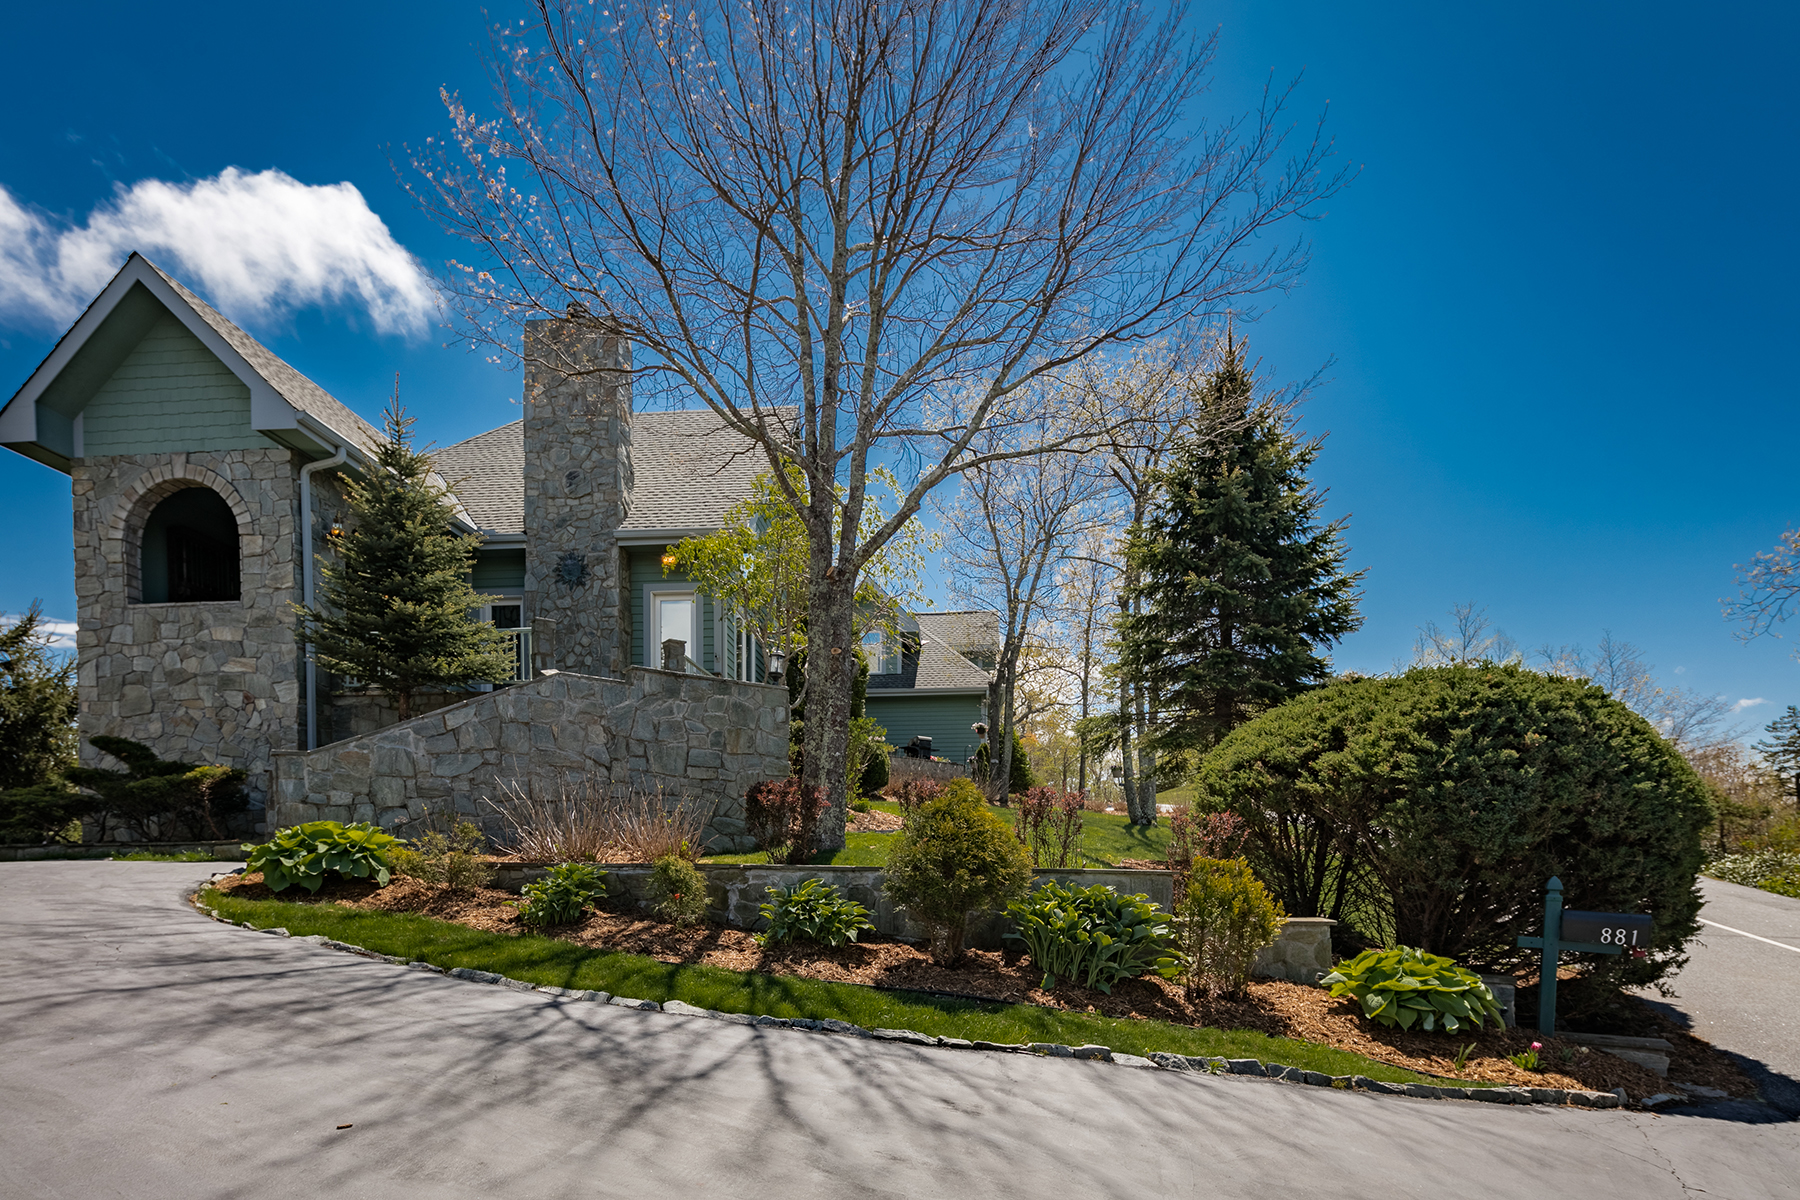 Single Family Home for Sale at GREYSTONE IV - BOONE 881 Greystone Dr Boone, North Carolina 28607 United States